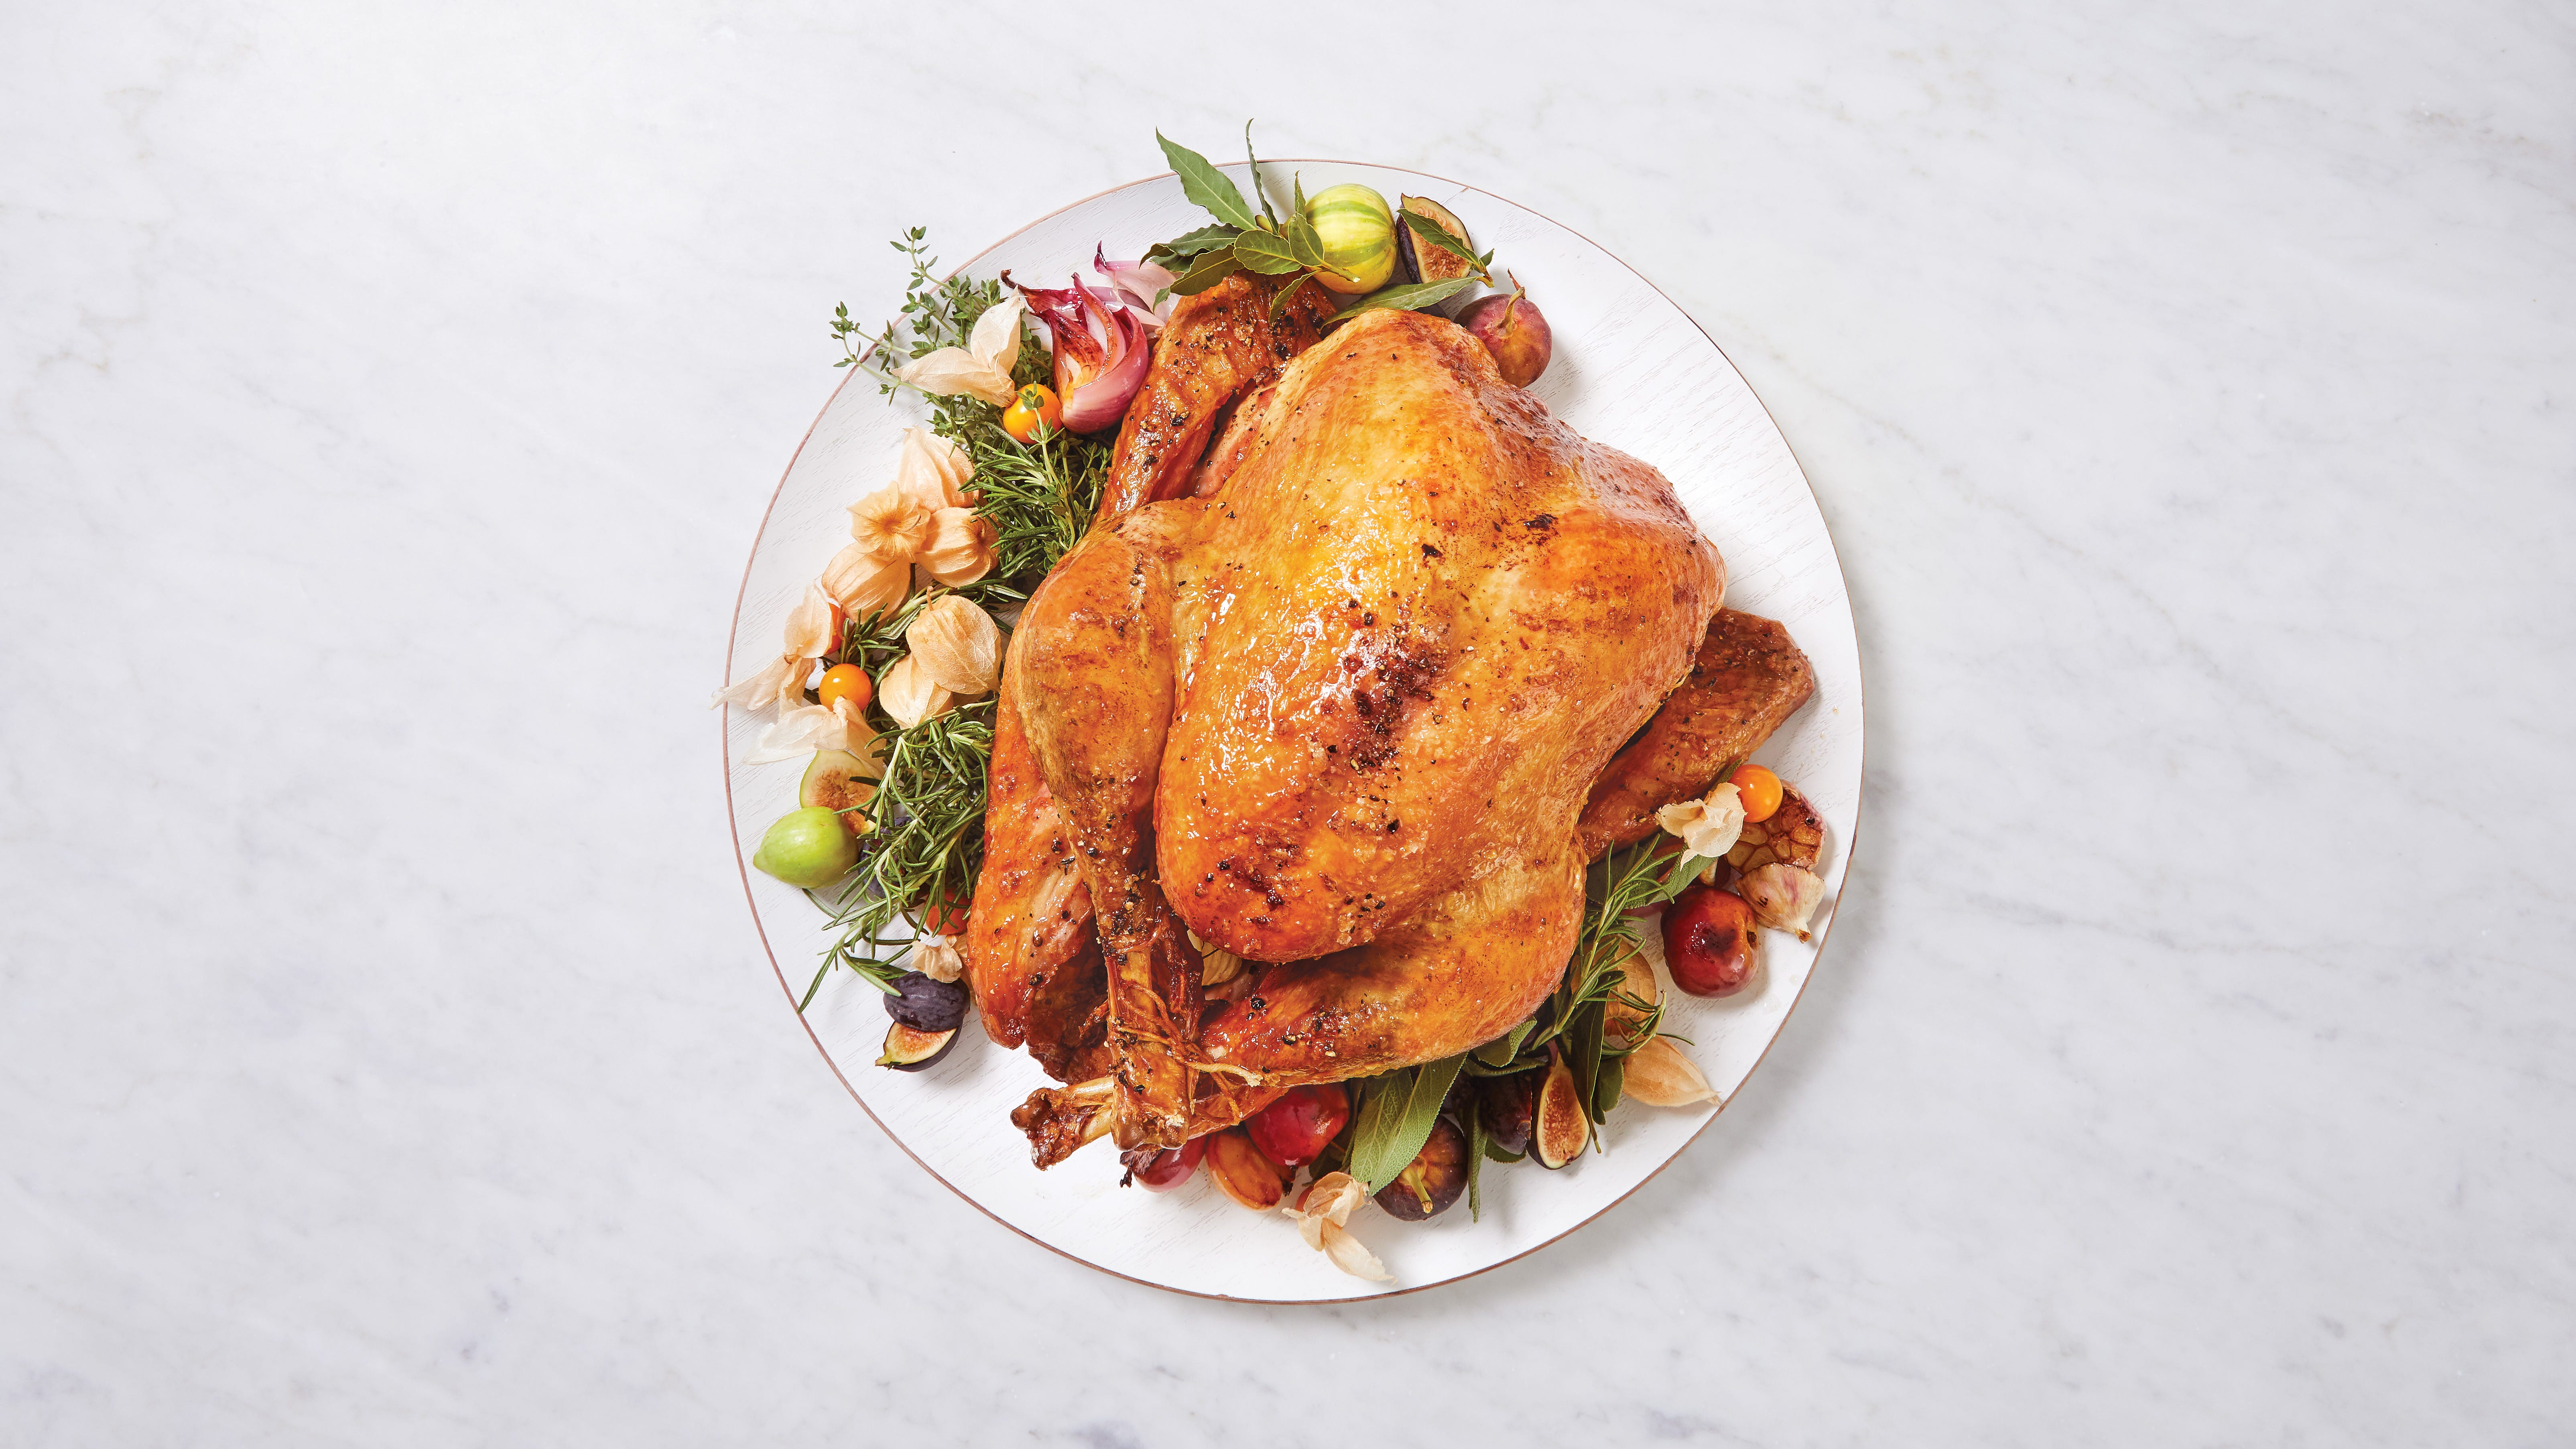 Amazon and Whole Foods Market have Thanksgiving turkey deals.